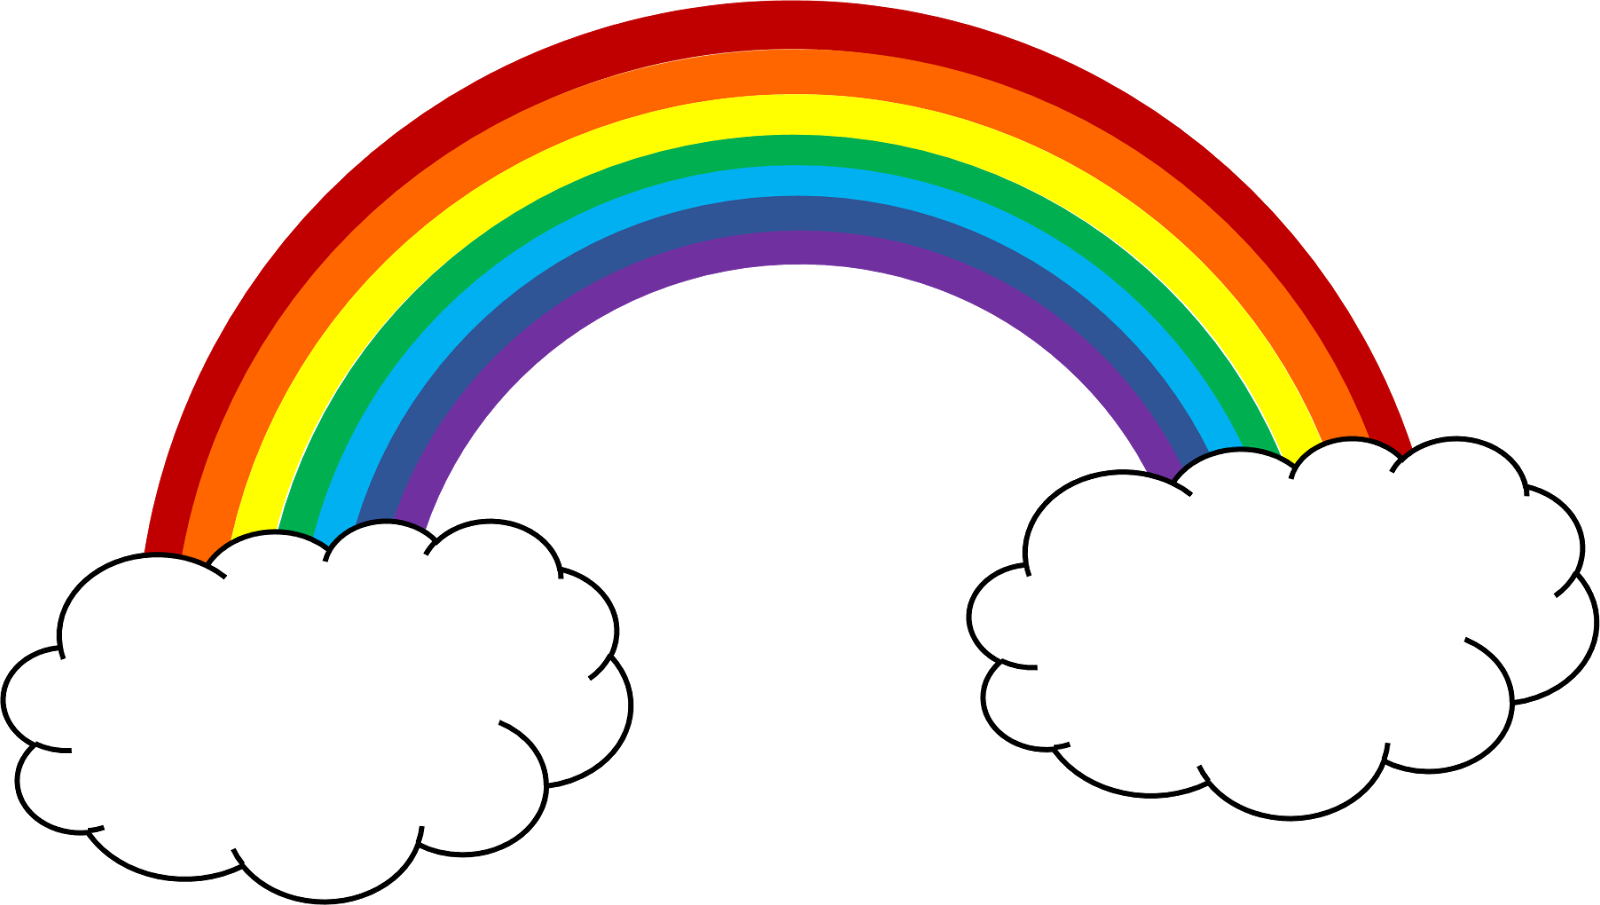 Rainbow sky cliparts free clipart club